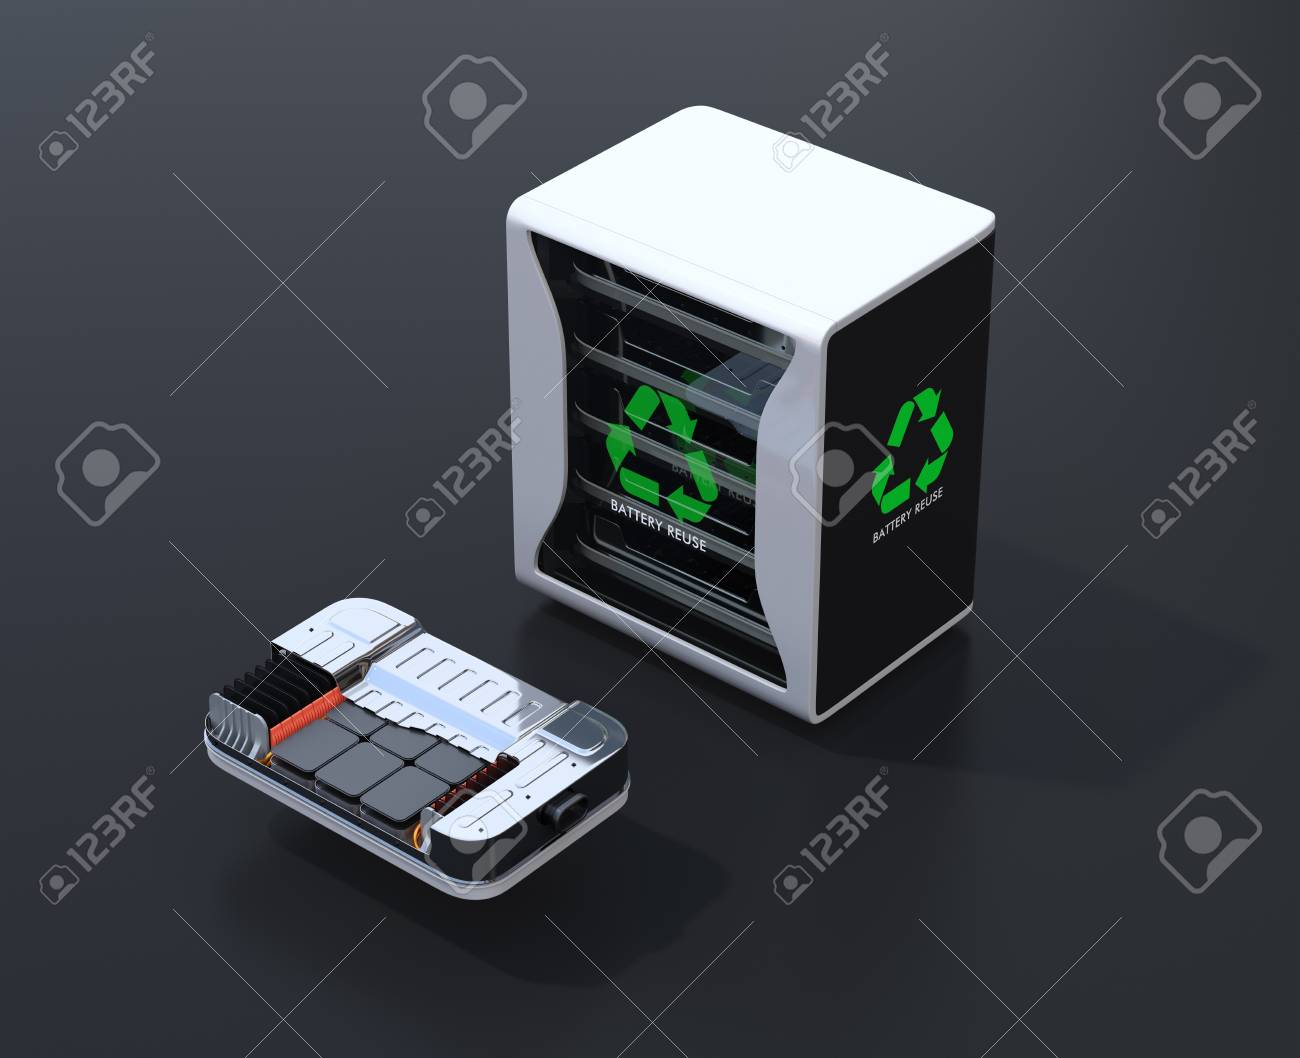 Reused electric vehicle batteries component system with EV battery package cutaway view. Black background. EV batteries recycle concept. 3D rendering image. - 110572604